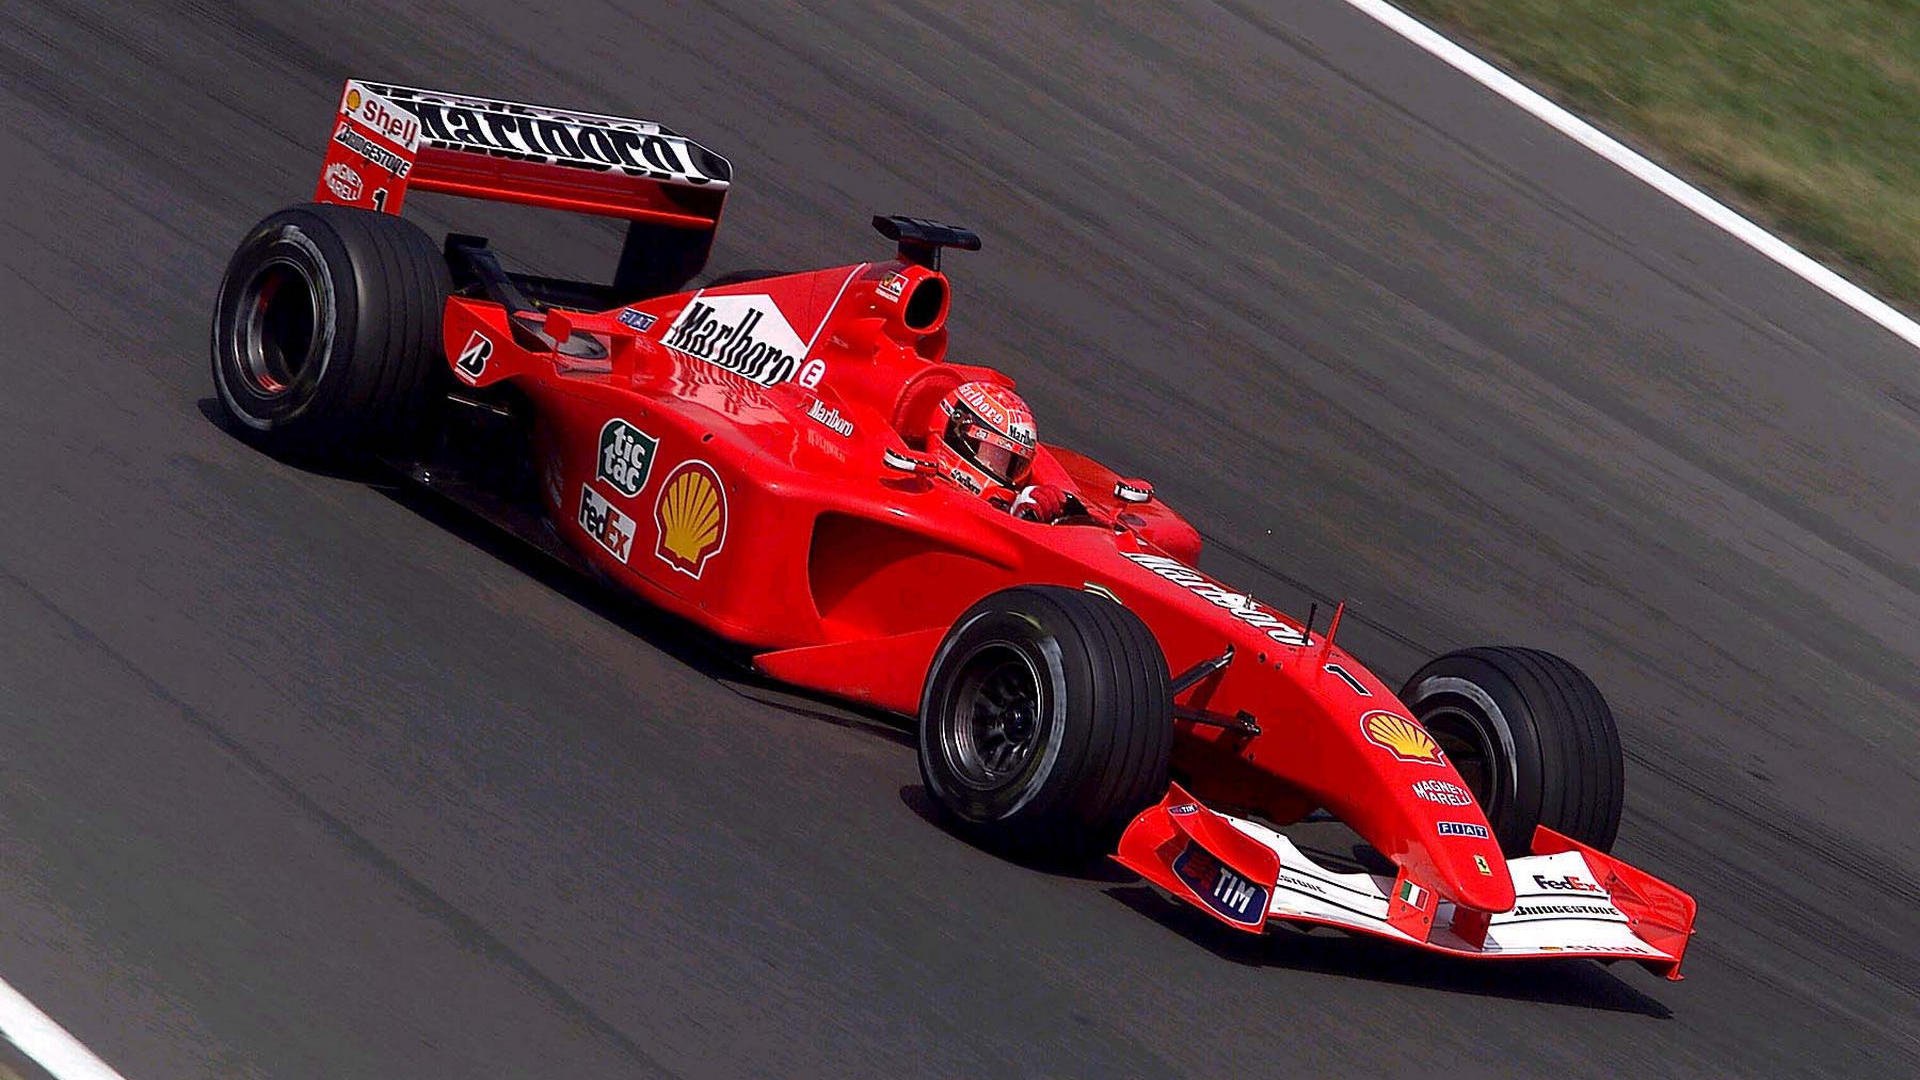 ferrari f2001 michael schumacher - photo #27